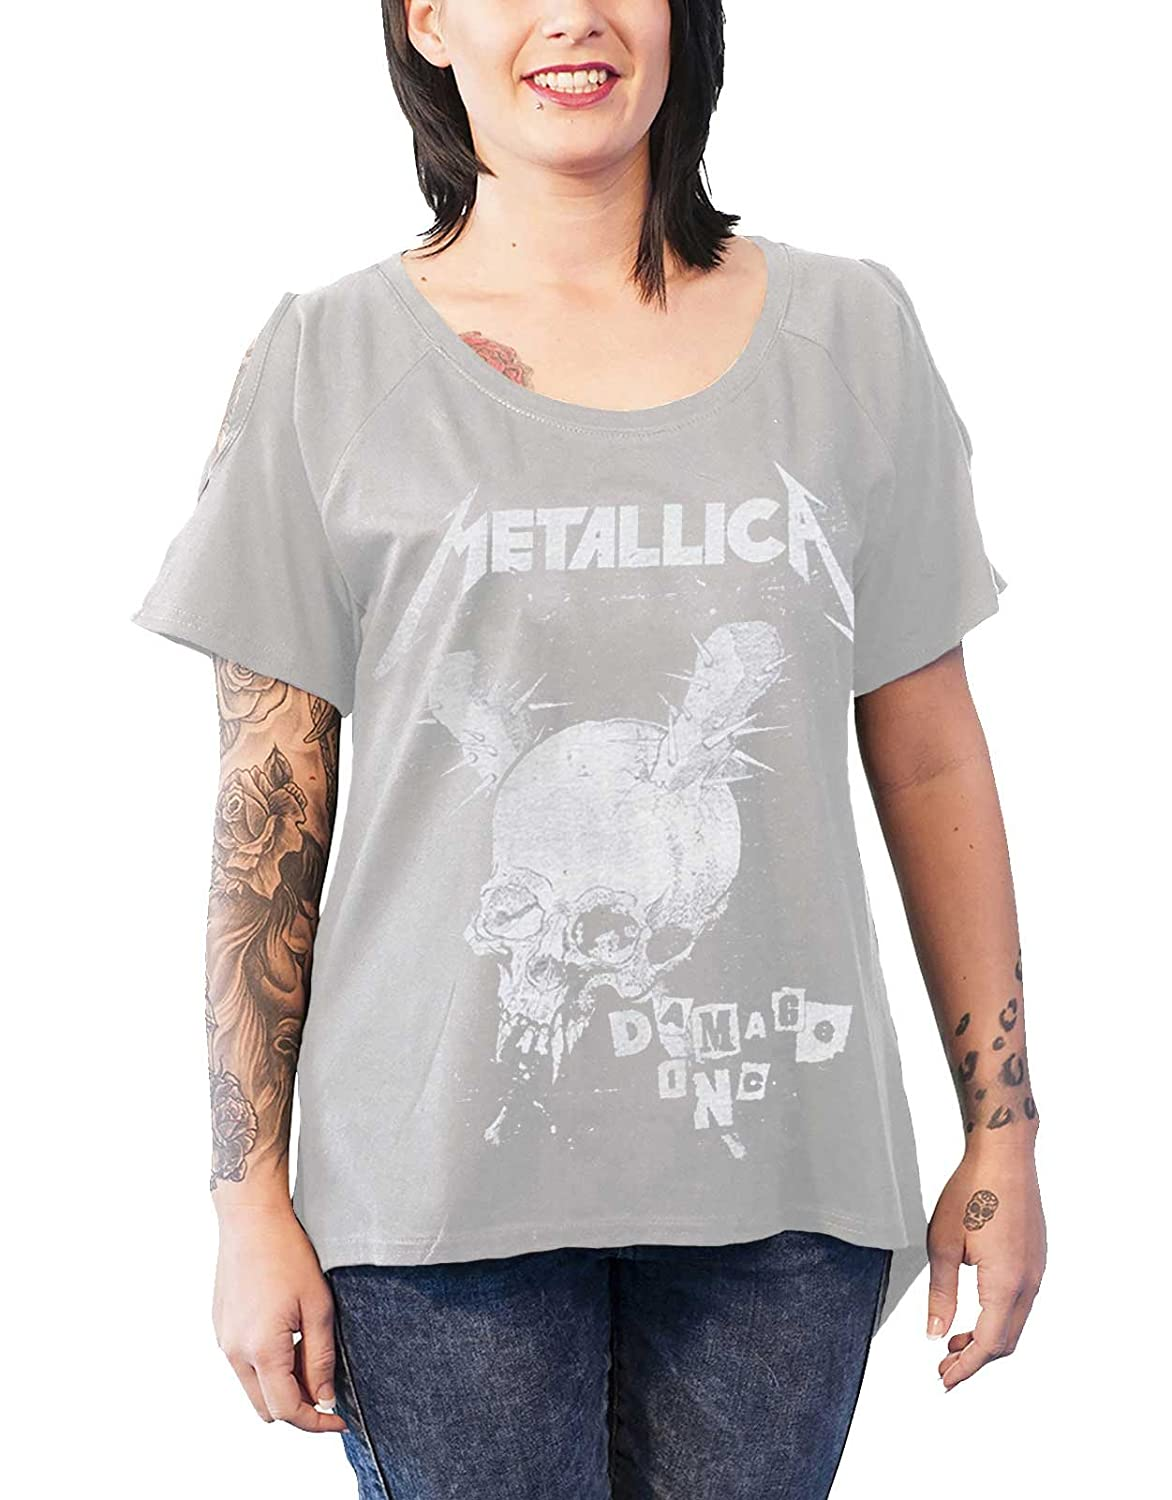 b6a6994e This Brand New Official Metallica T Shirt with a Distressed Damage Inc Band  Logo Design on a Womens Grey Cut Out Short Sleeve Crew Neck Skinny Fit T  Shirt ...